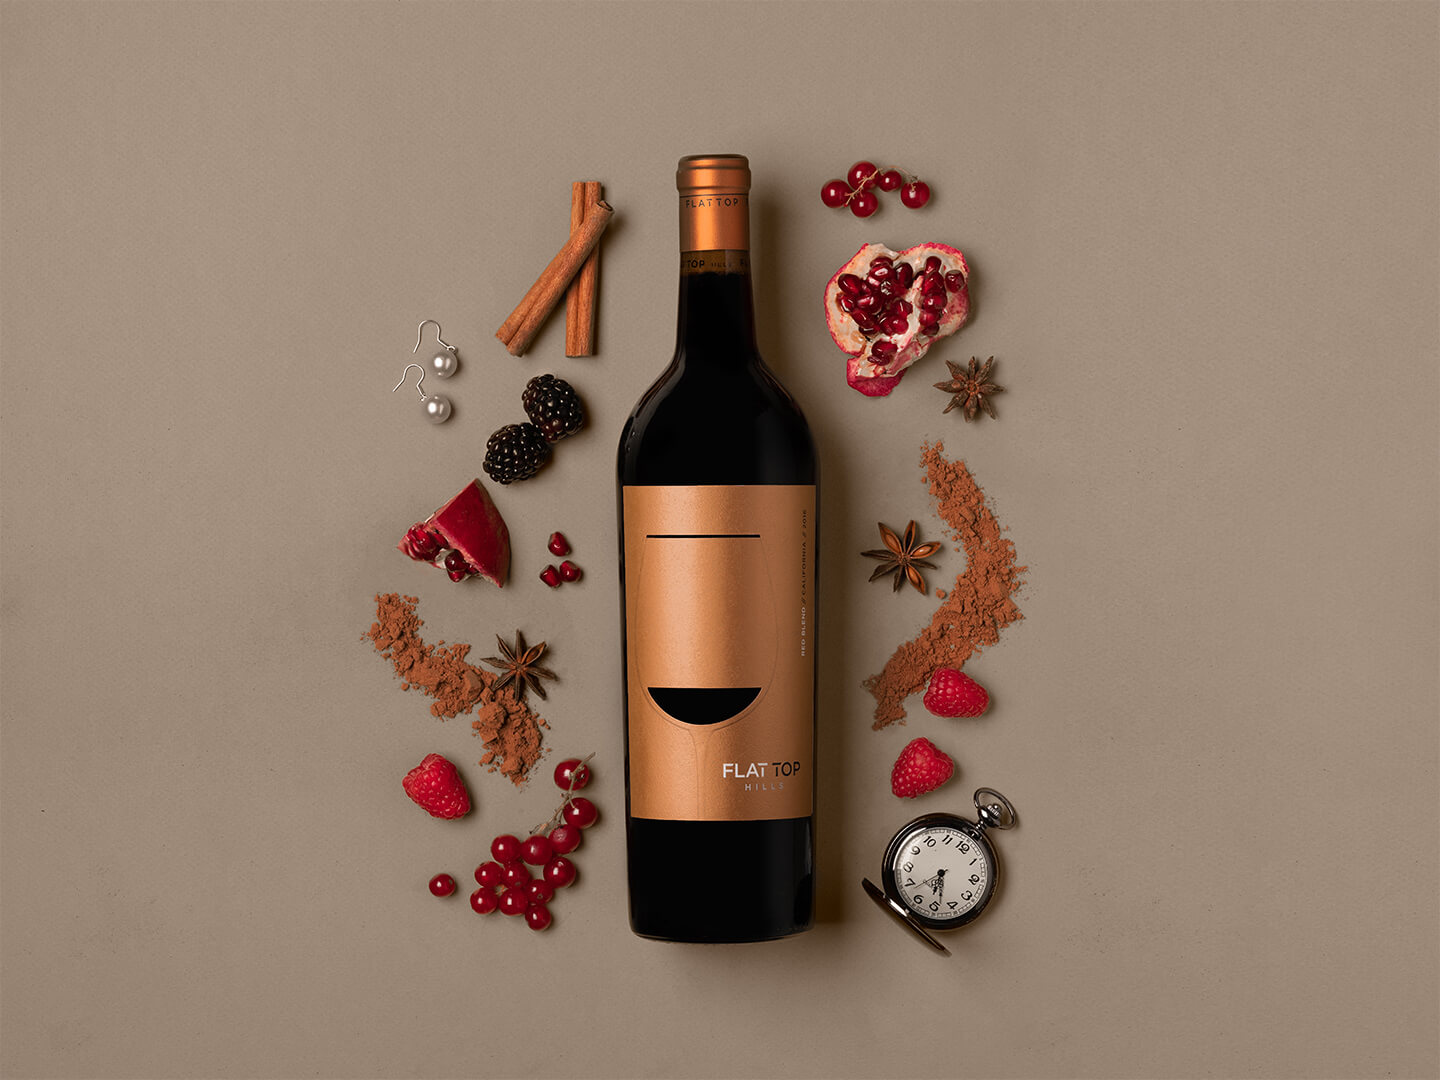 Flat Top Red Blend